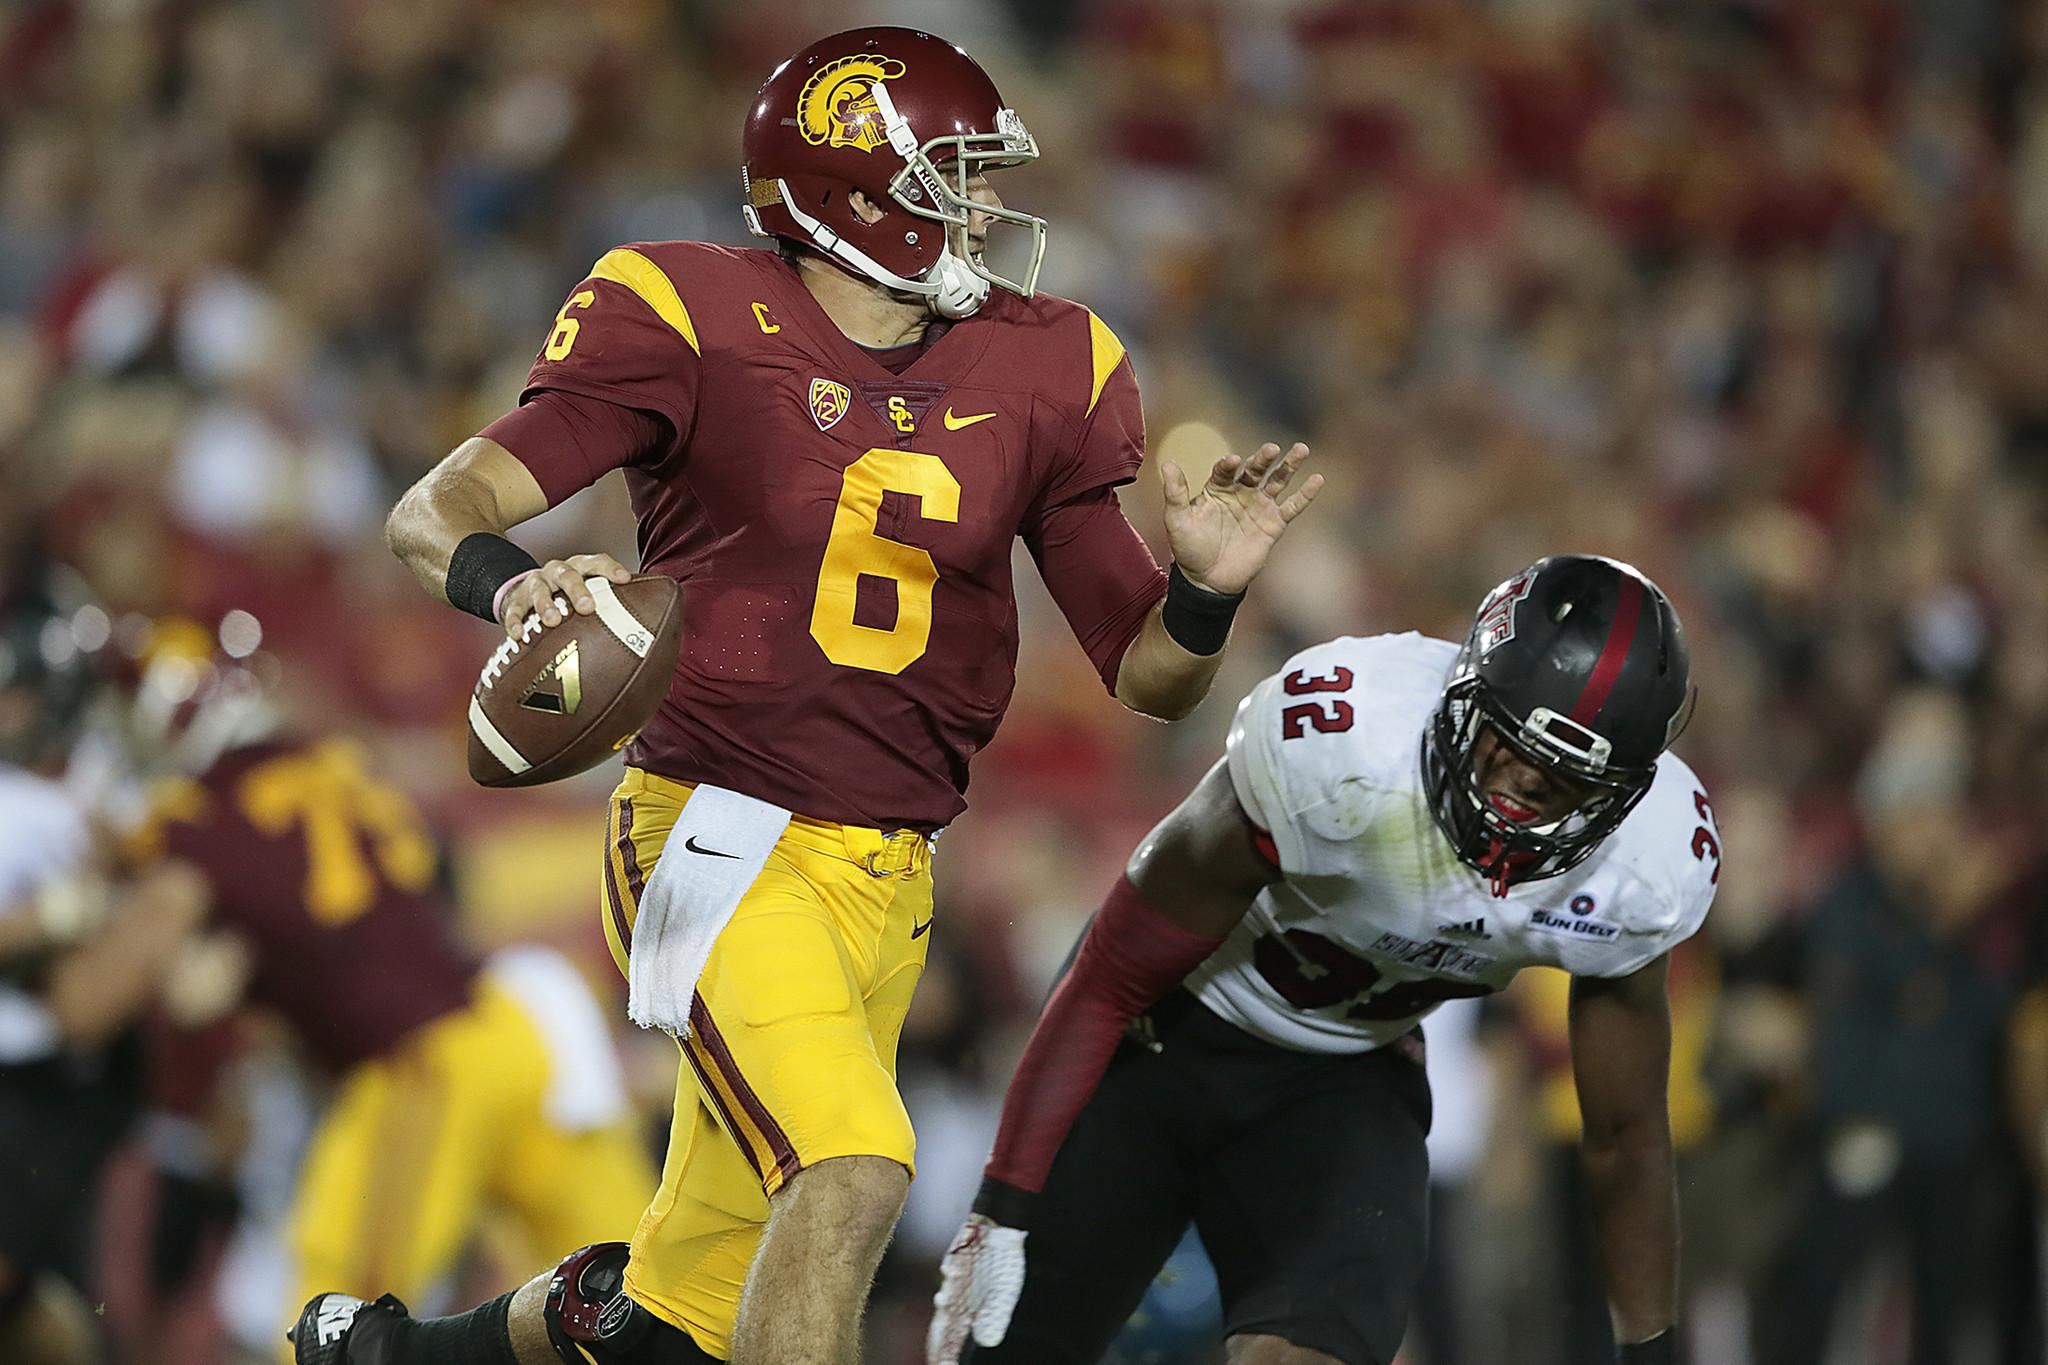 Get the latest news and information for the USC Trojans 2018 season schedule scores stats and highlights Find out the latest on your favorite NCAAF teams on